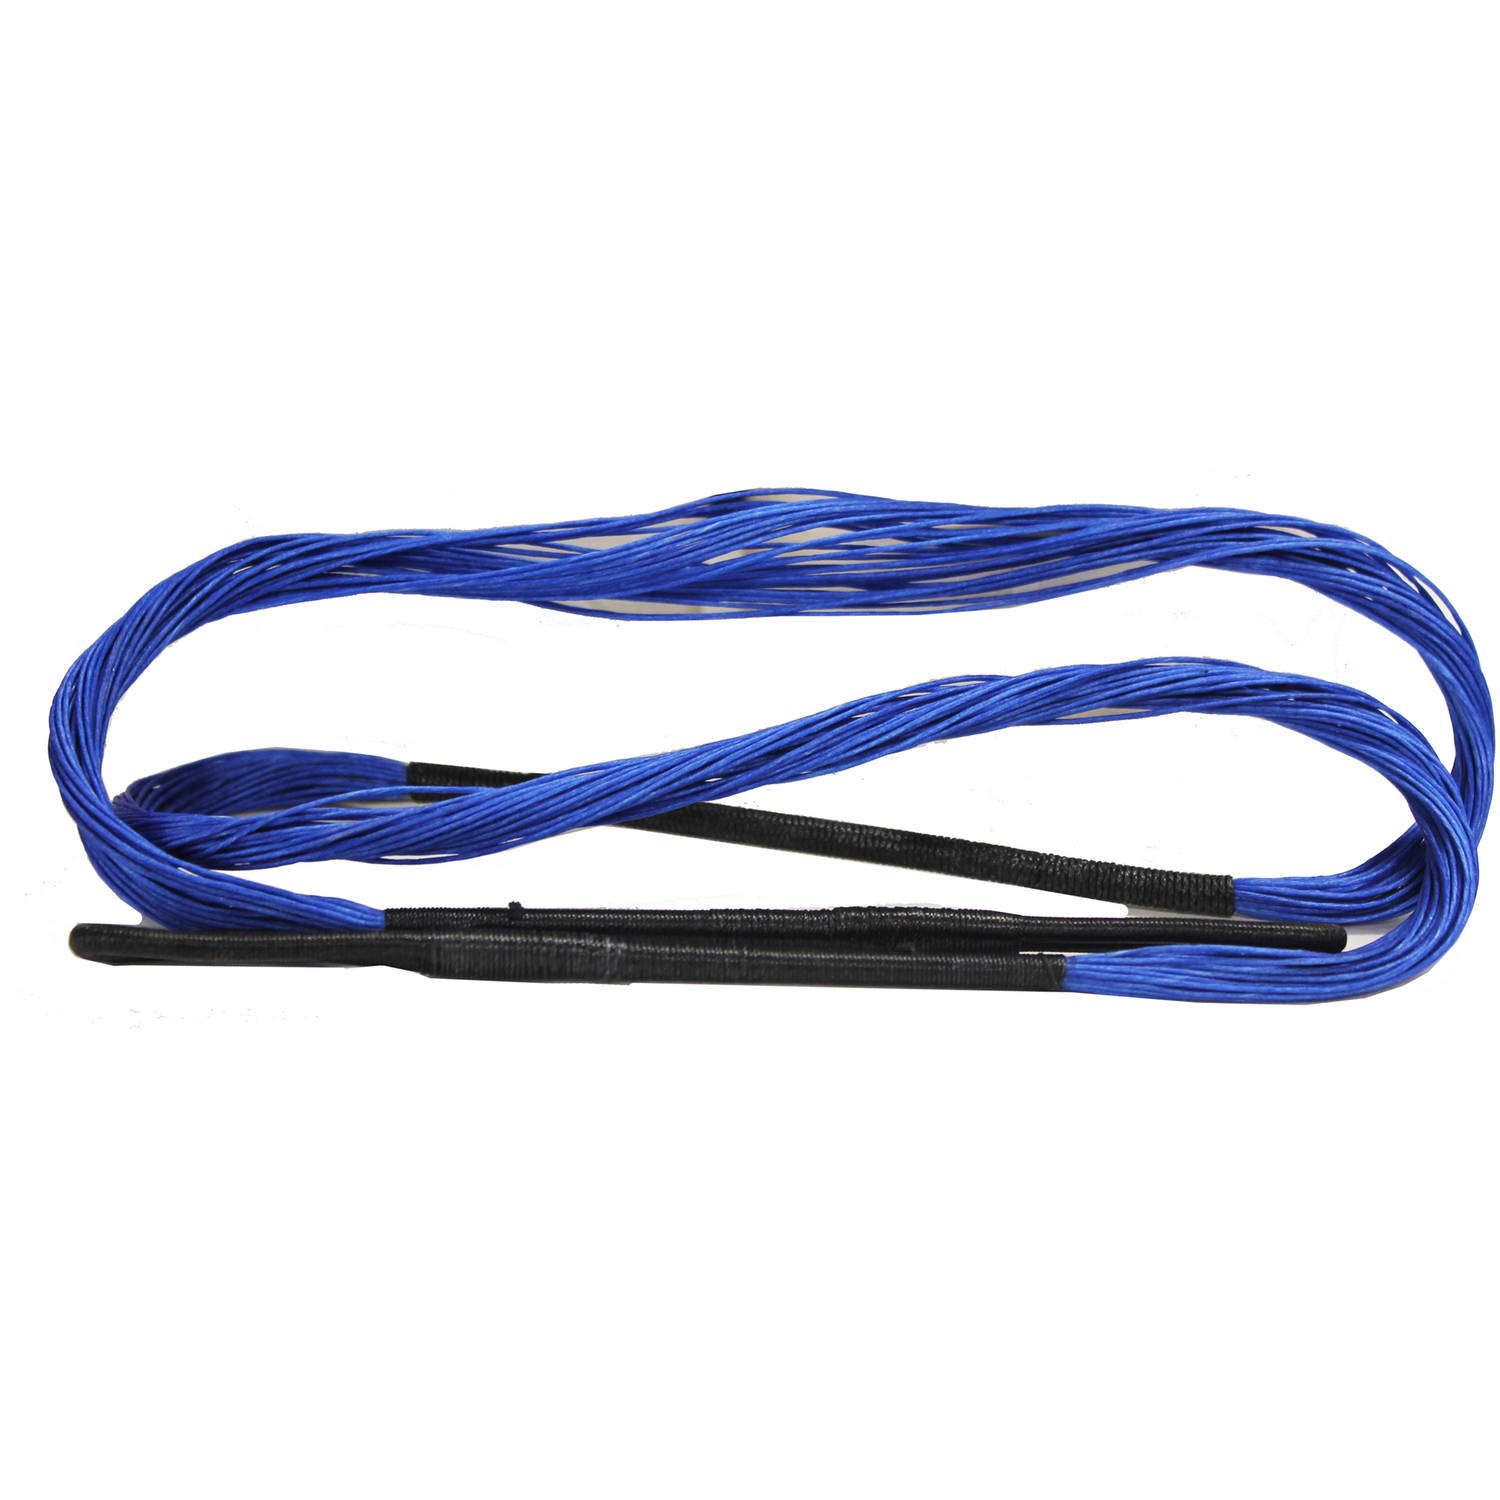 Excalibur Crossbow Excel String Stingray Blue